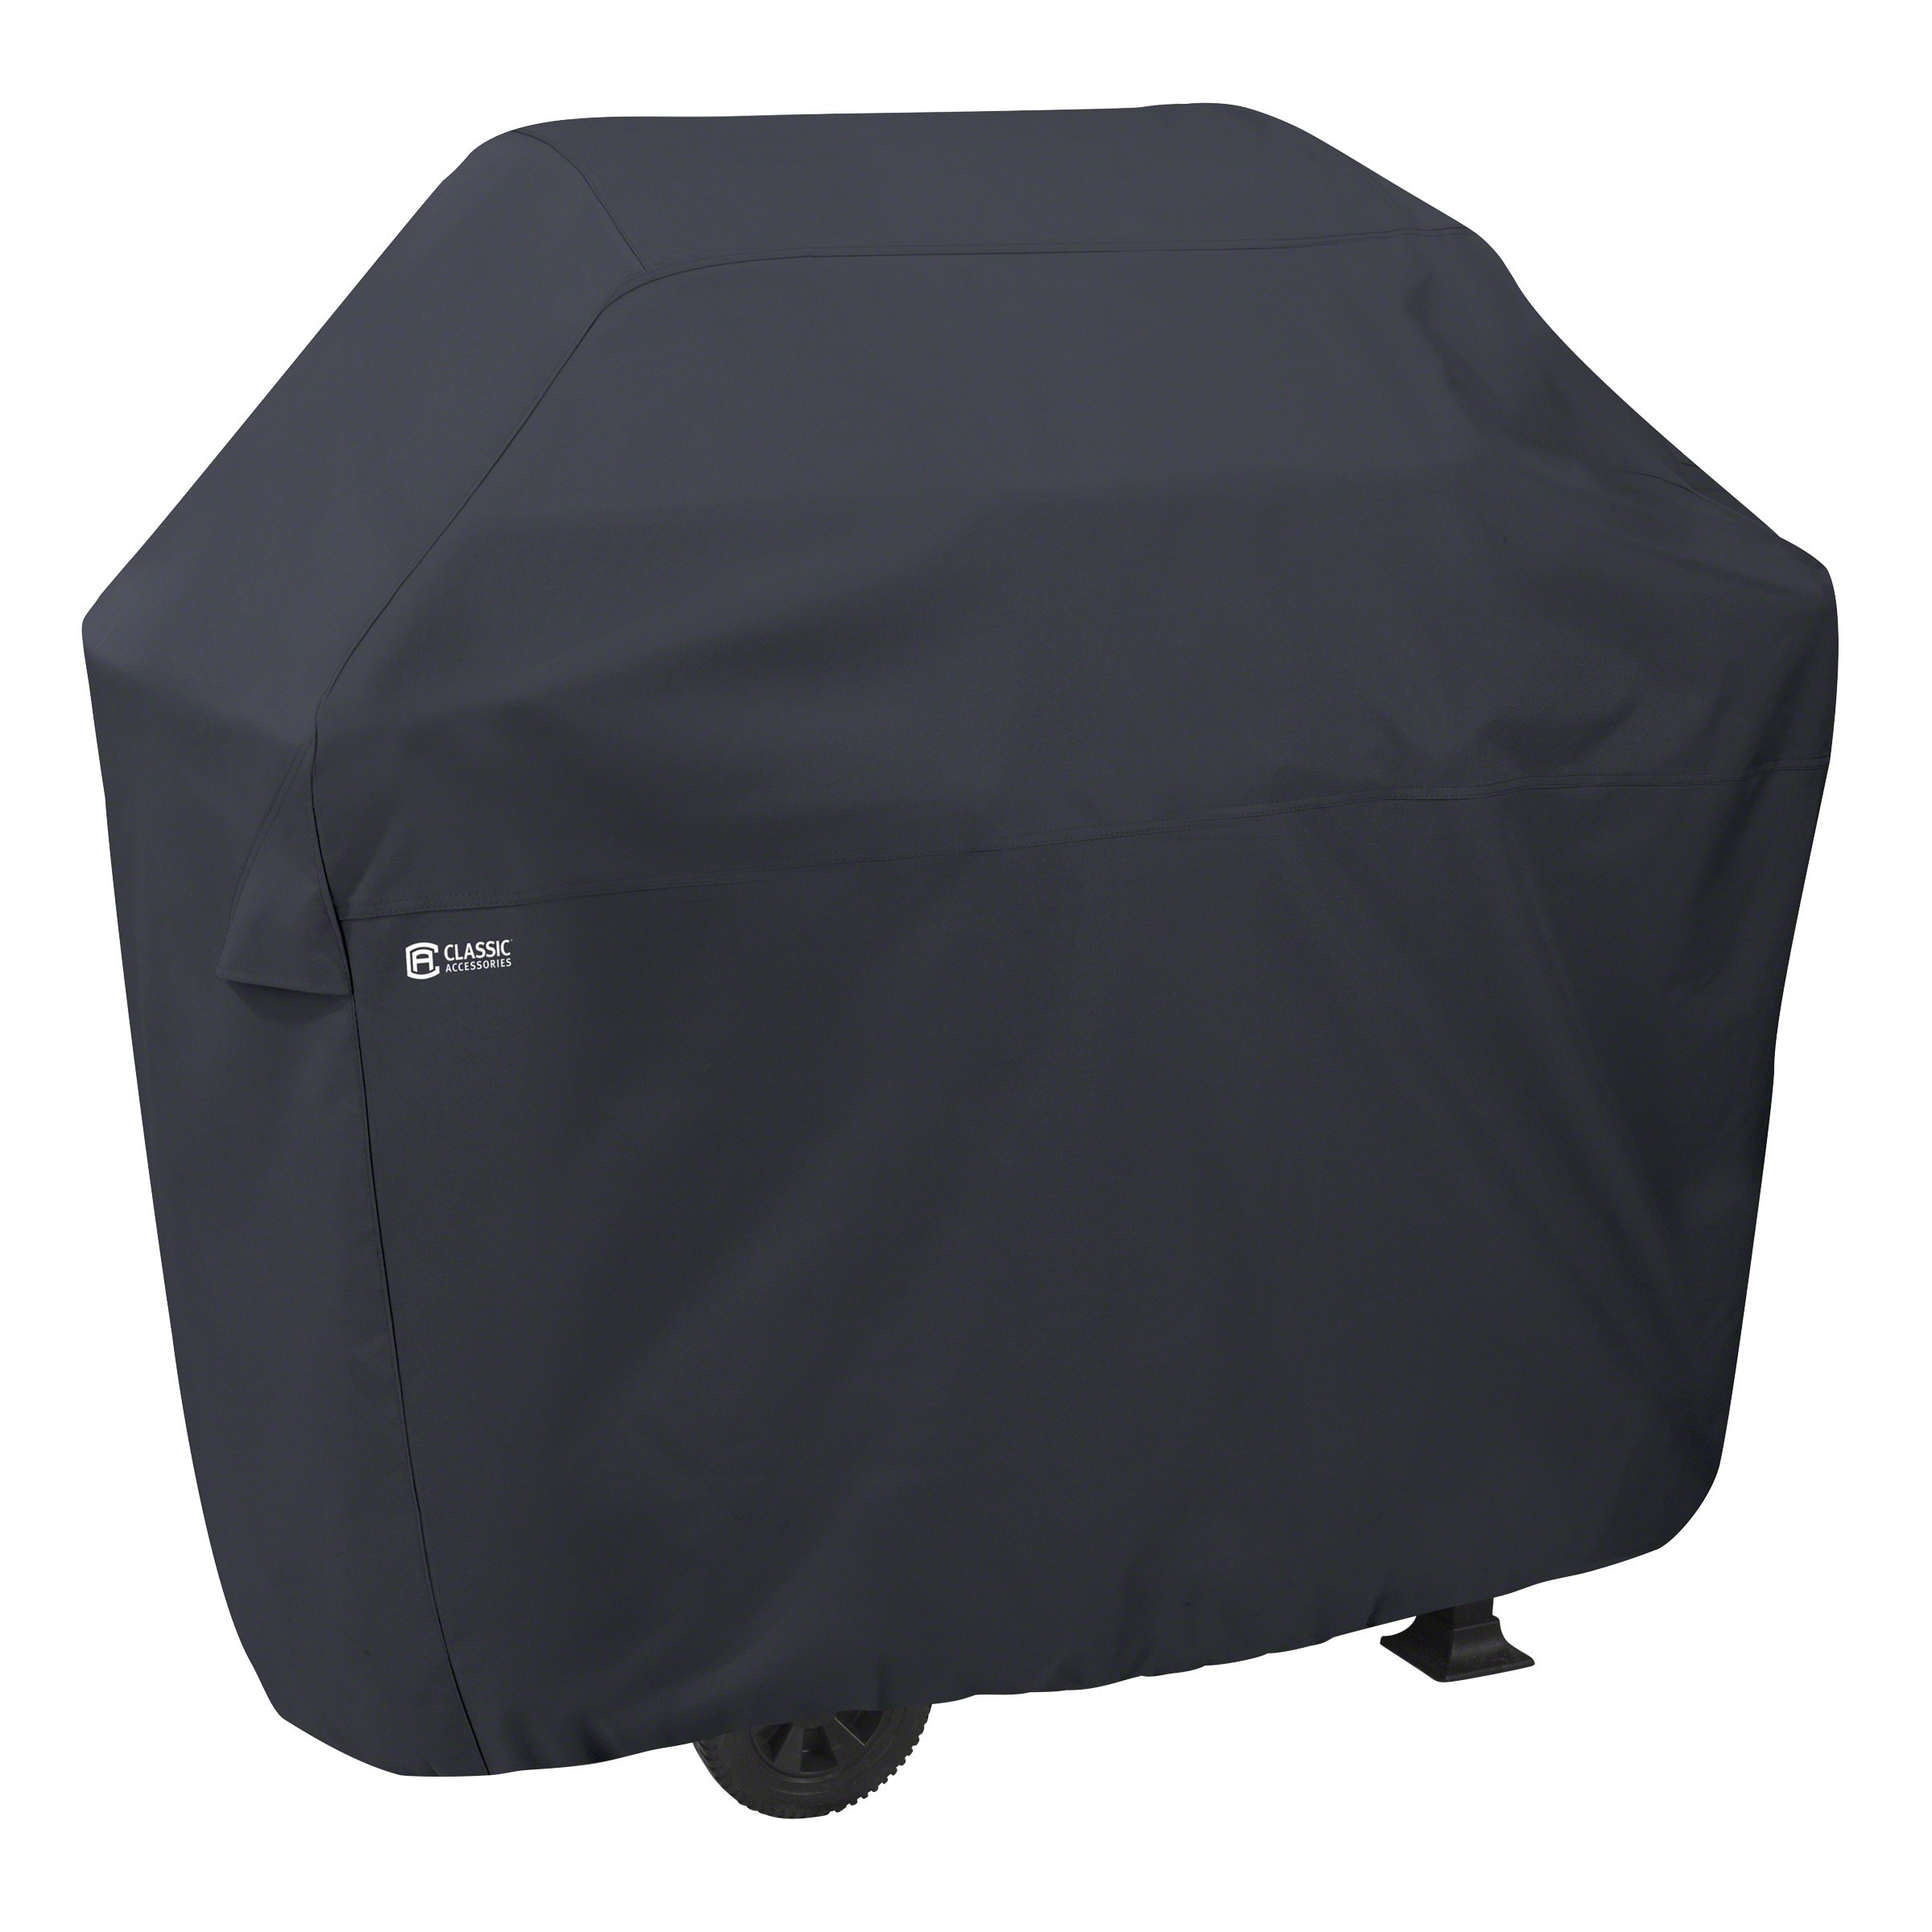 Classic Accessories Grill Cover, XXX-Large, Black